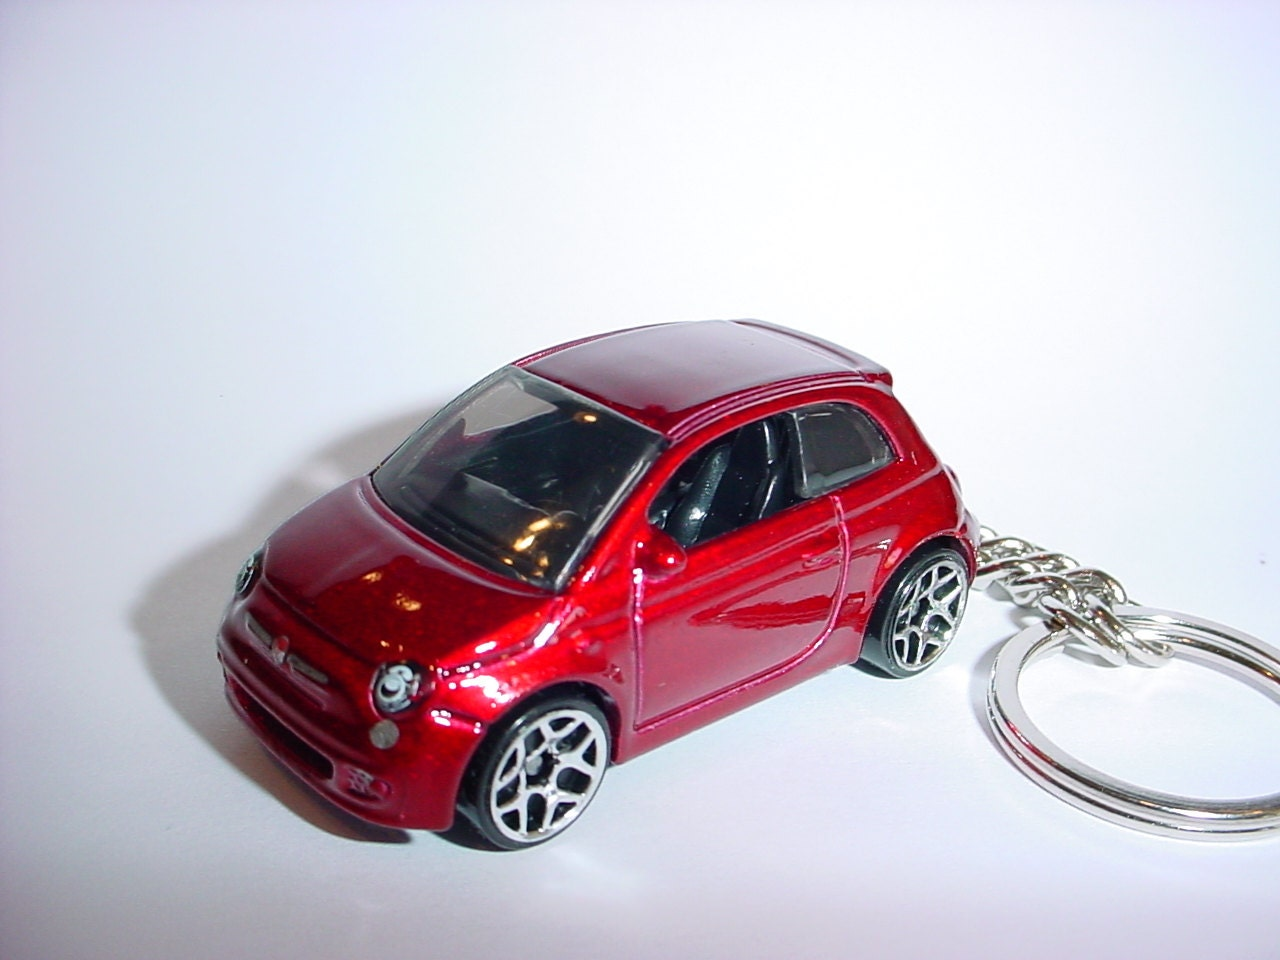 3d fiat 500 porte cl personnalis keyring porte cl s par. Black Bedroom Furniture Sets. Home Design Ideas